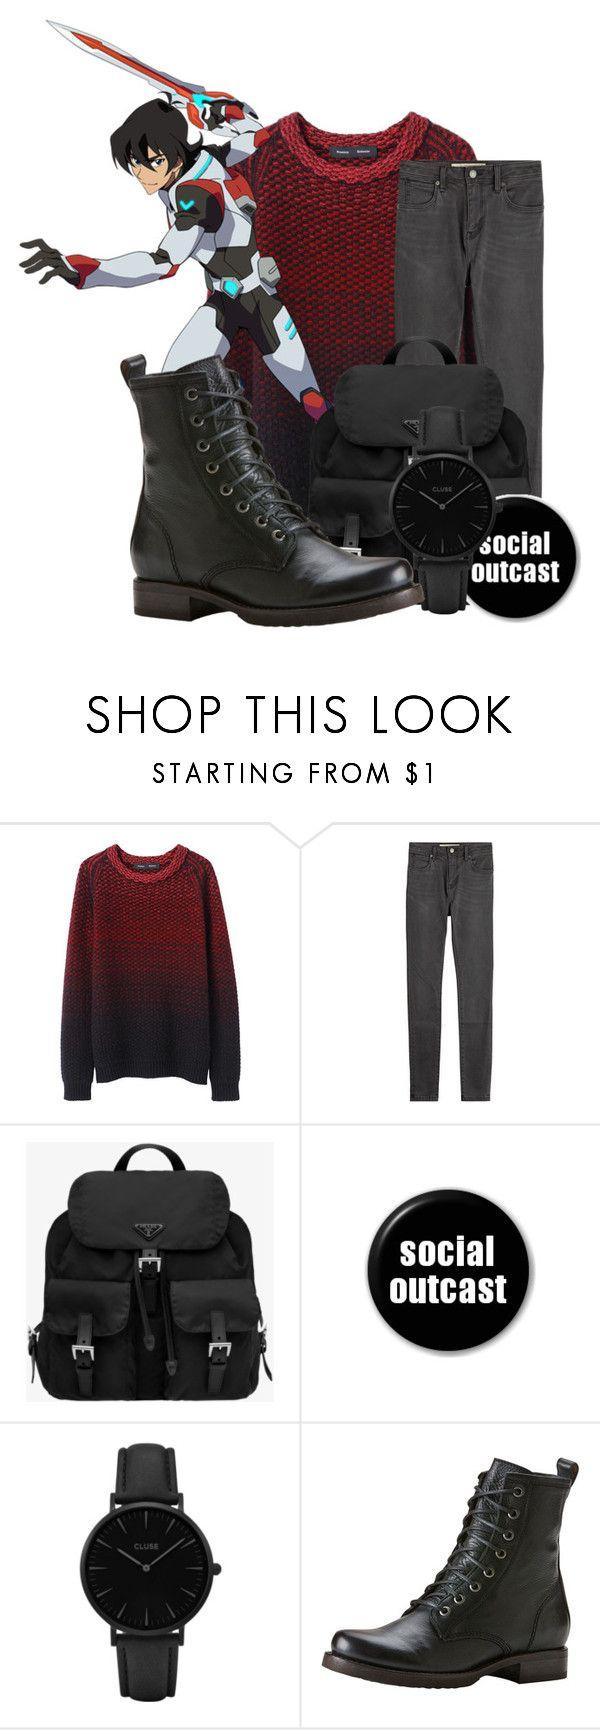 """Keith Kogane"" by cheytheunicorngirl ❤ liked on Polyvore featuring Proenza Schouler, Burberry, Prada, CLUSE, Frye, men's fashion, menswear and voltron"